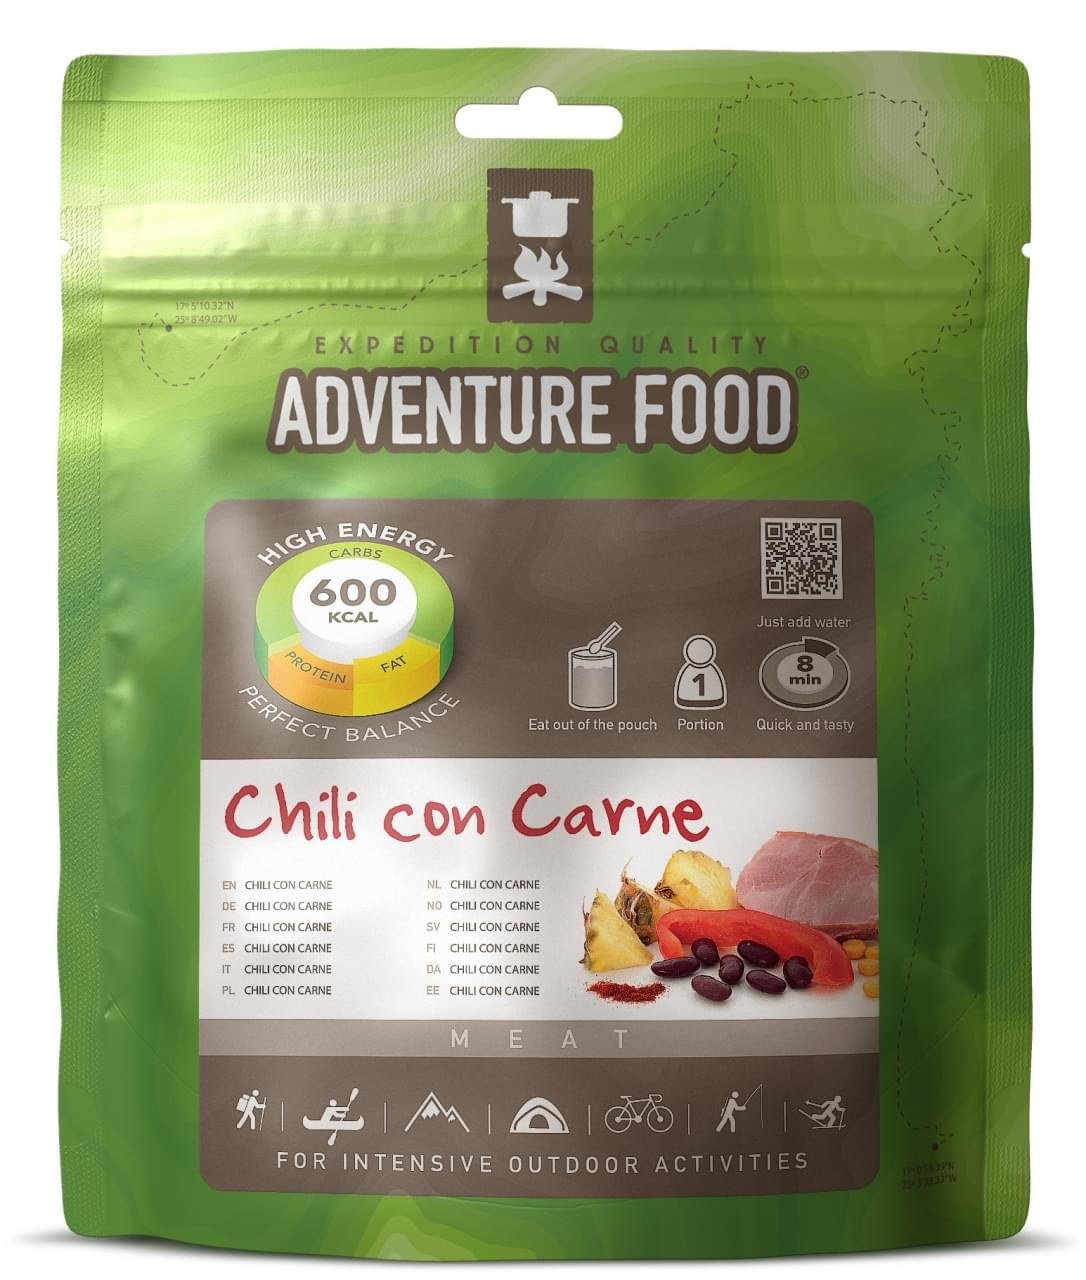 Adventure Food Een portie Chili con Carne